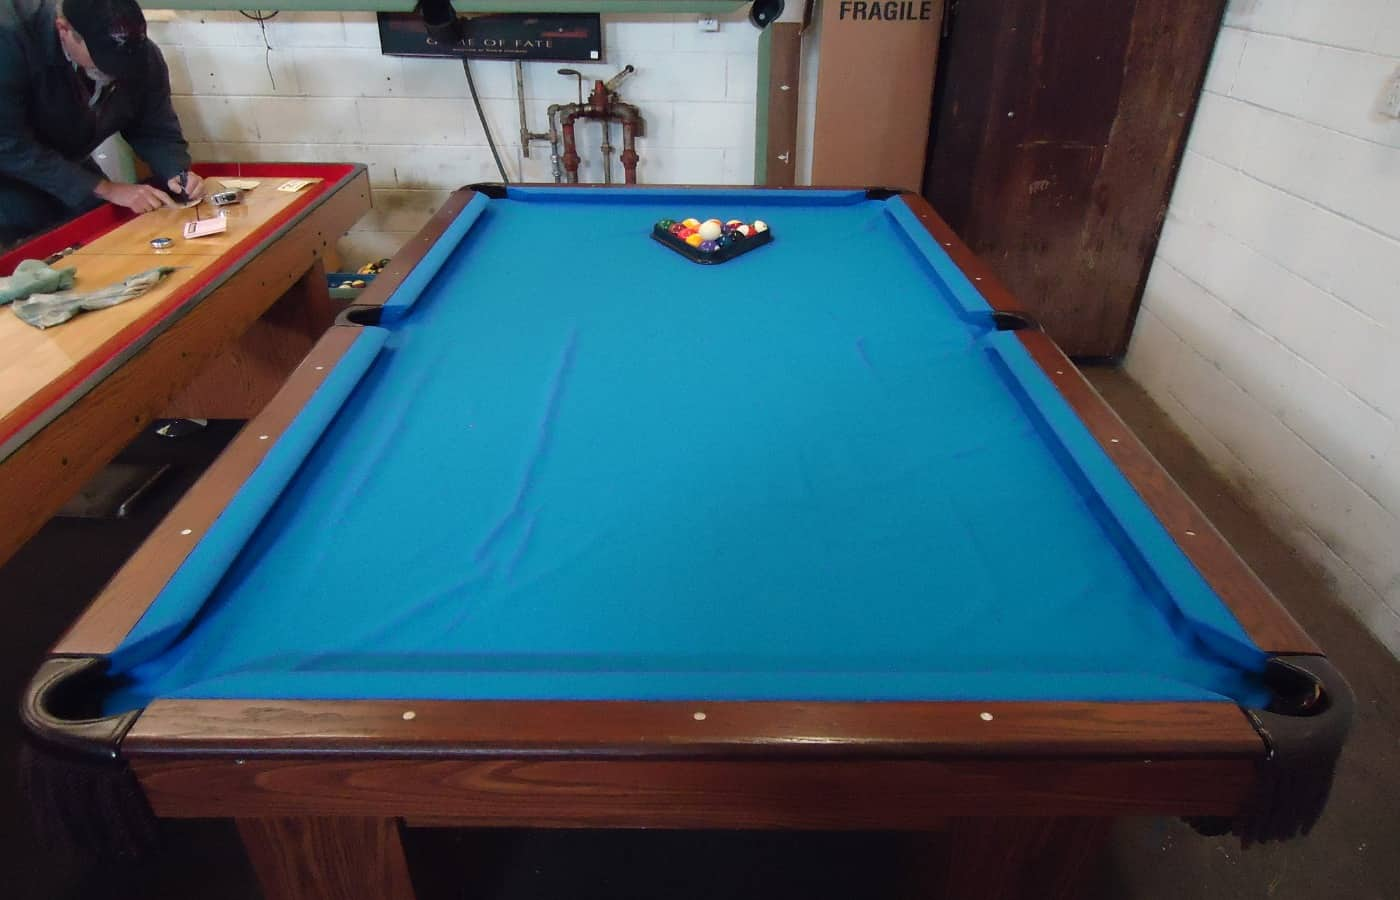 can you use a lint roller on a pool tabl;e